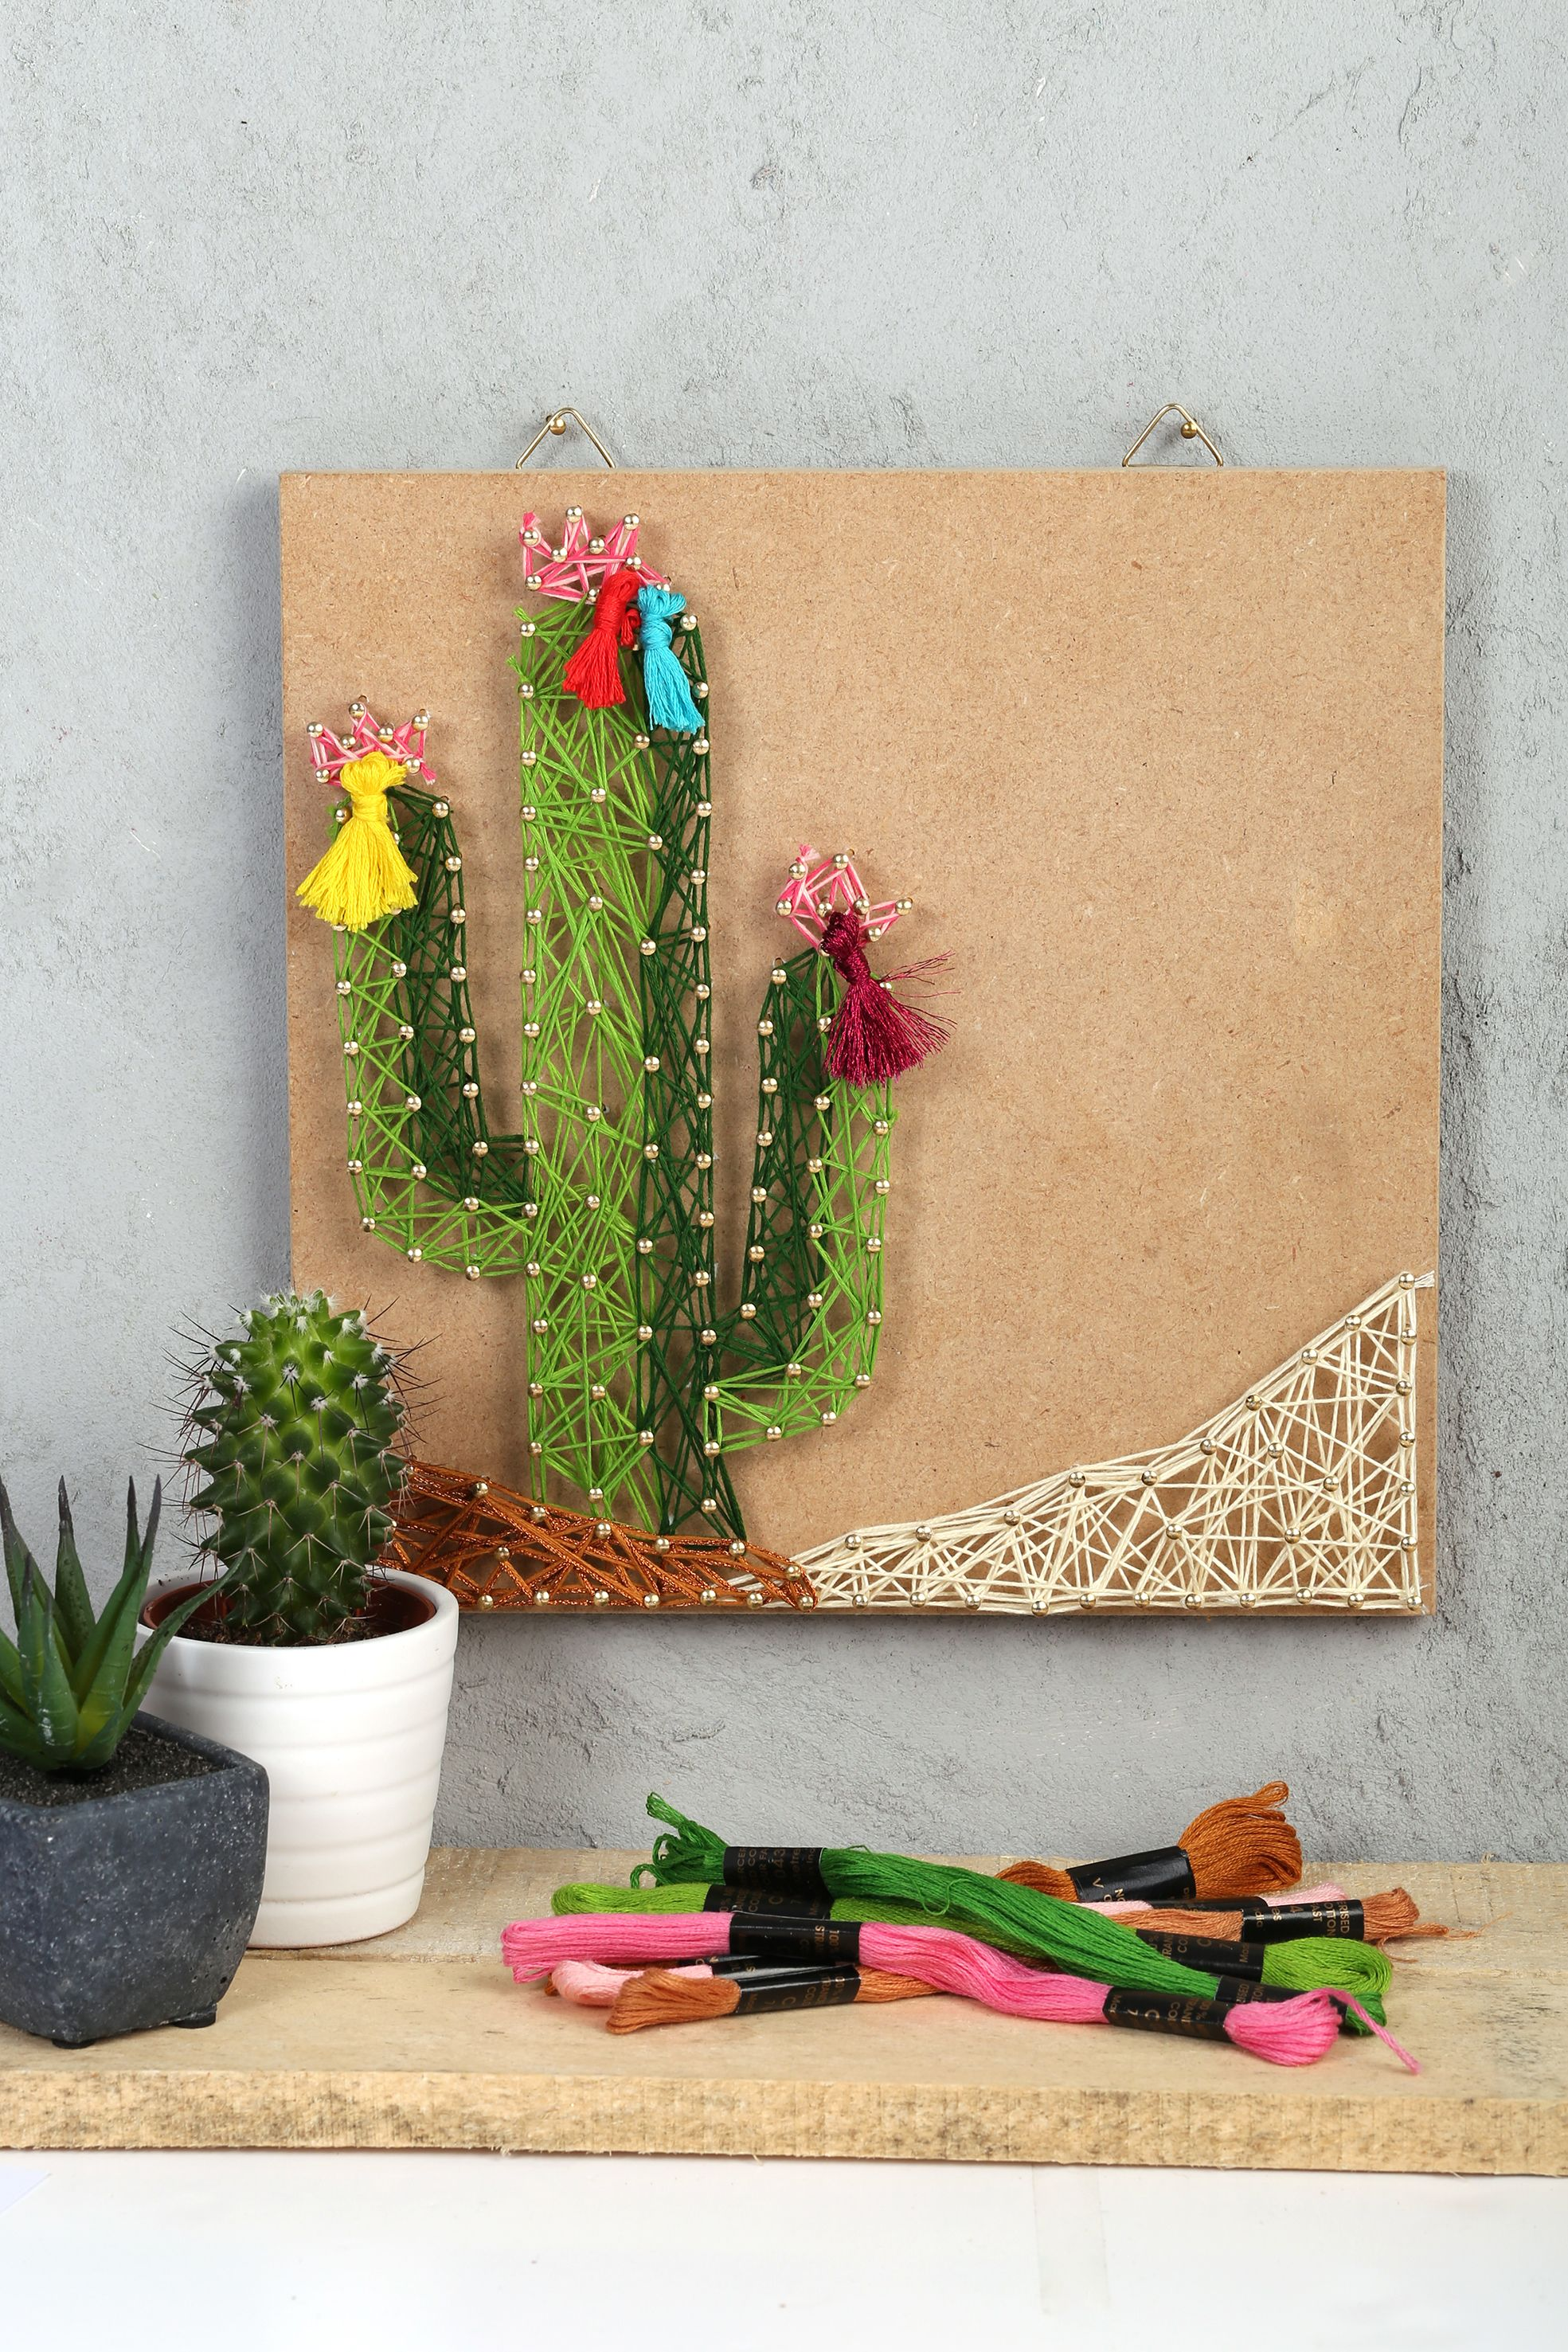 Agreable STRING ART CACTUS DIY Tropical Summer Home Déco Tendance Lama